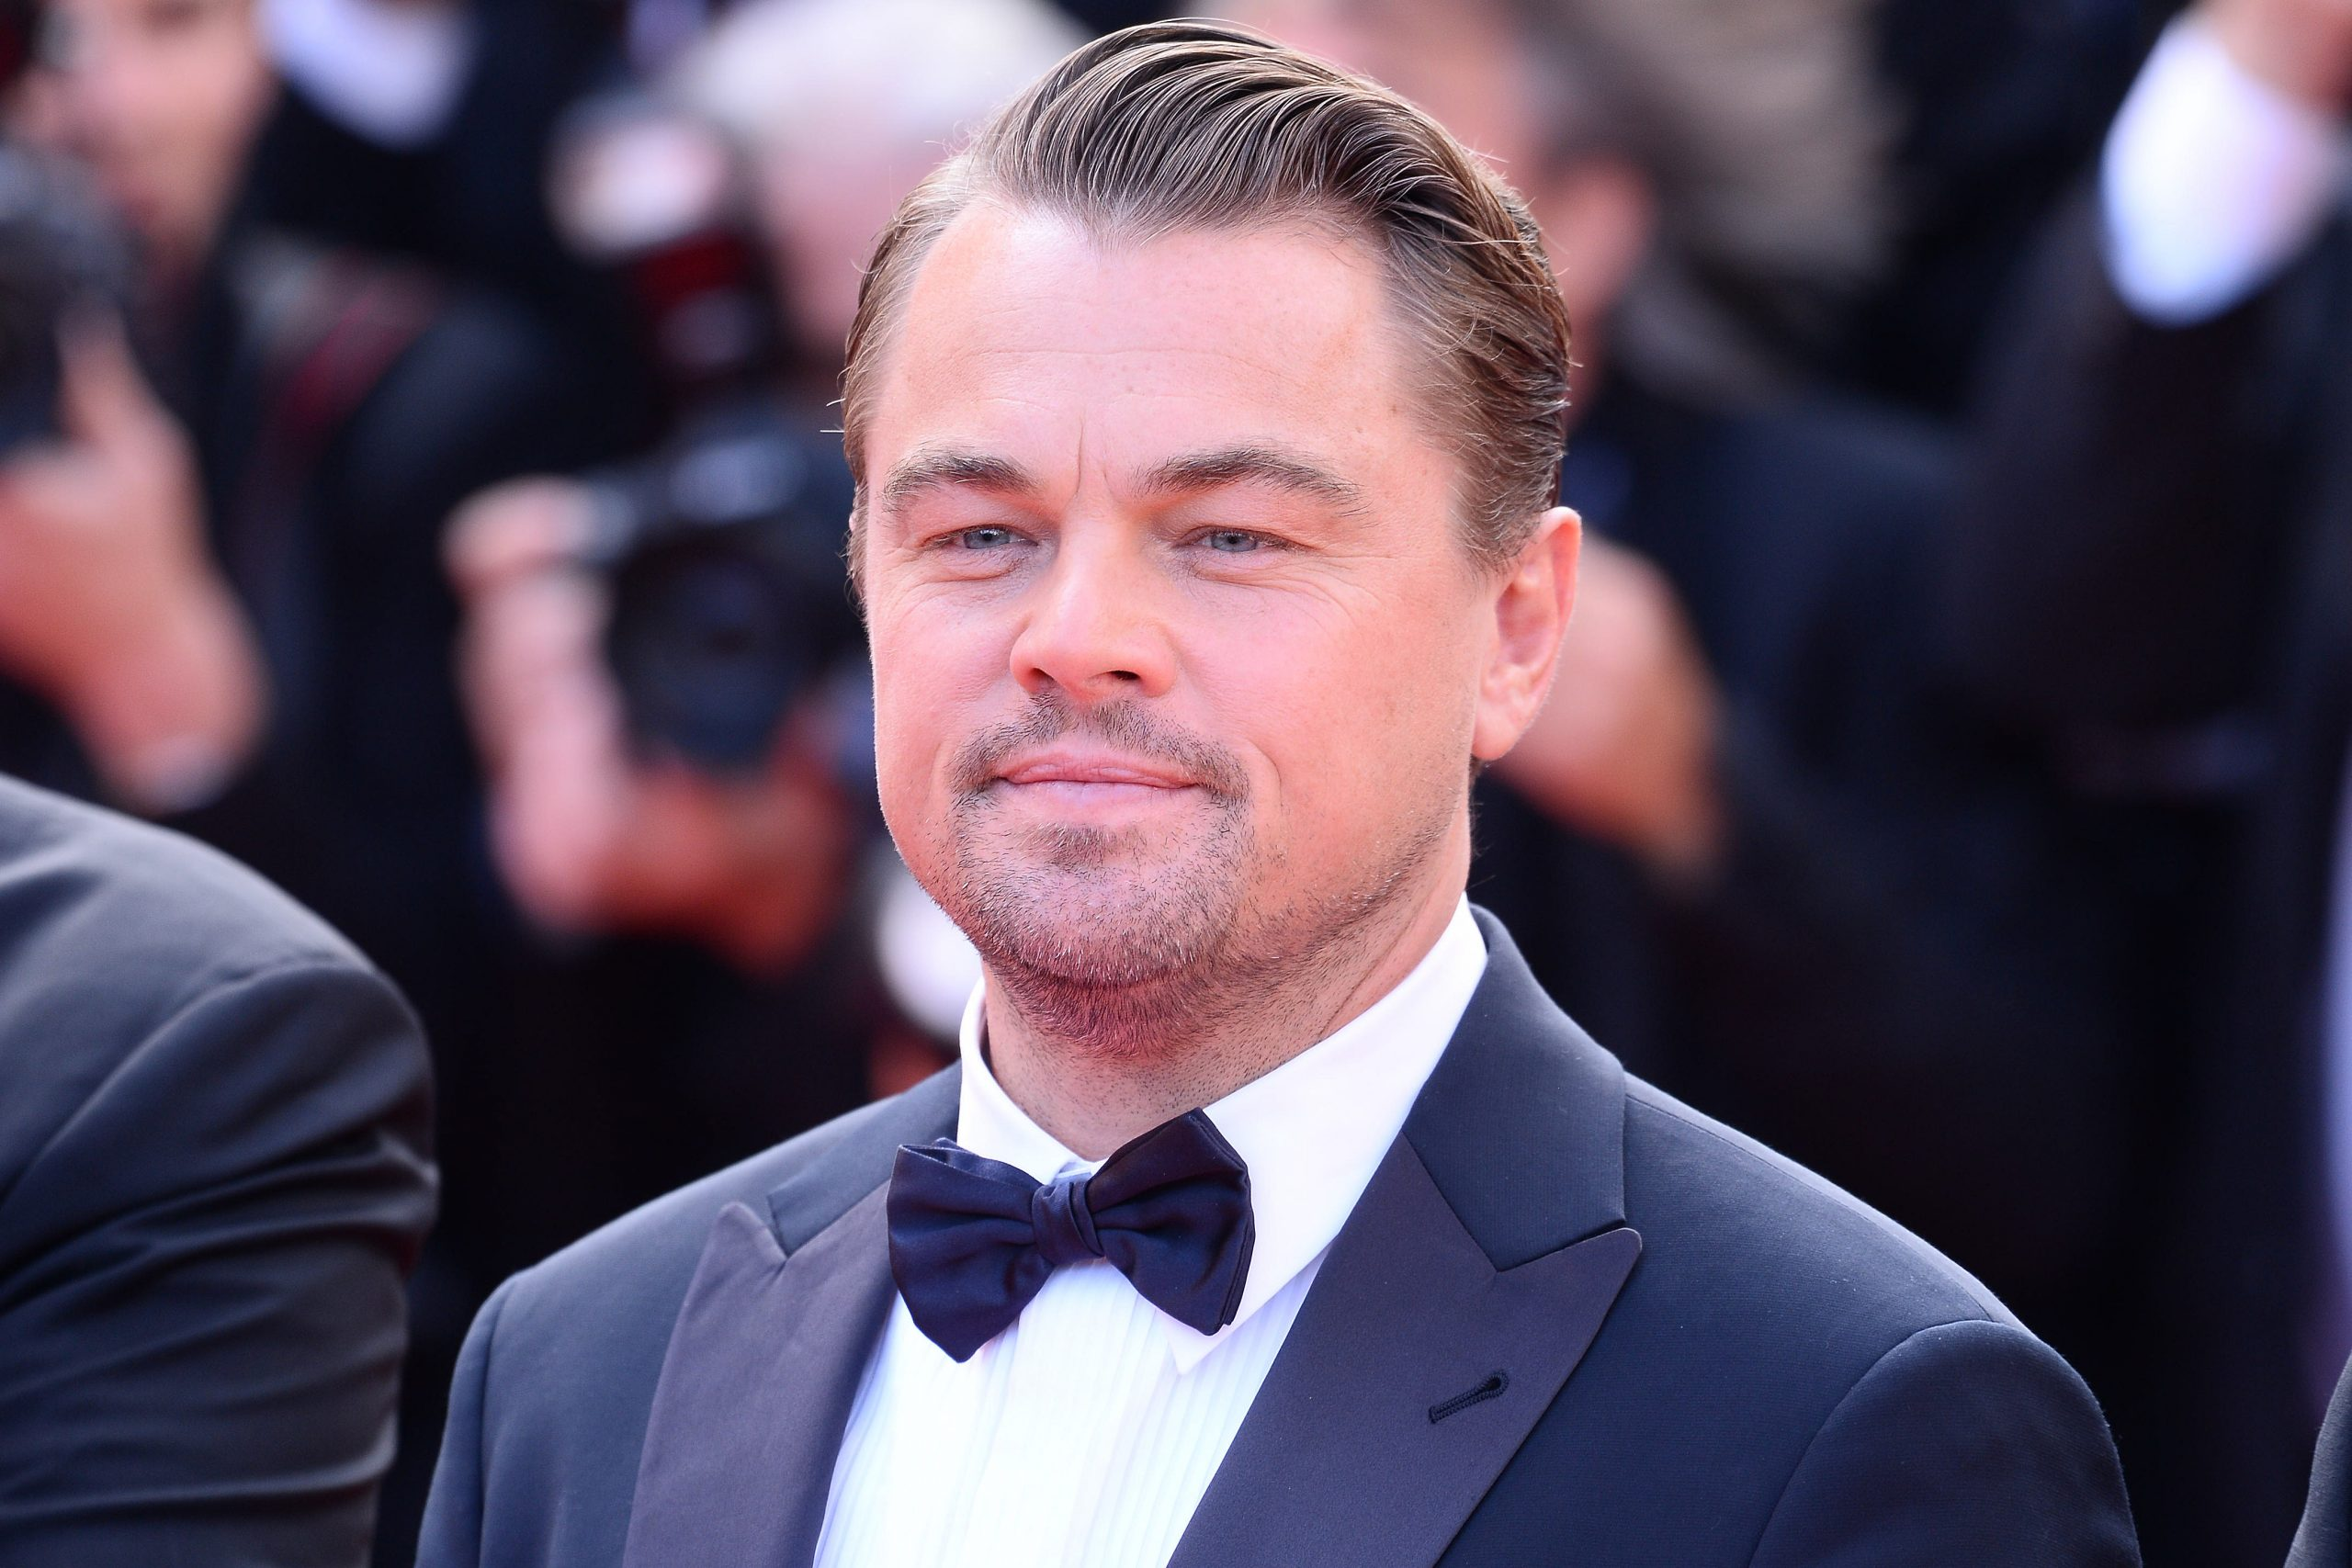 """CANNES, FRANCE - MAY 21, 2019: Premiere of the film """"Once Upon A Time In Hollywood"""" during the 72nd Cannes Film Festival - Leonardo DiCaprio"""